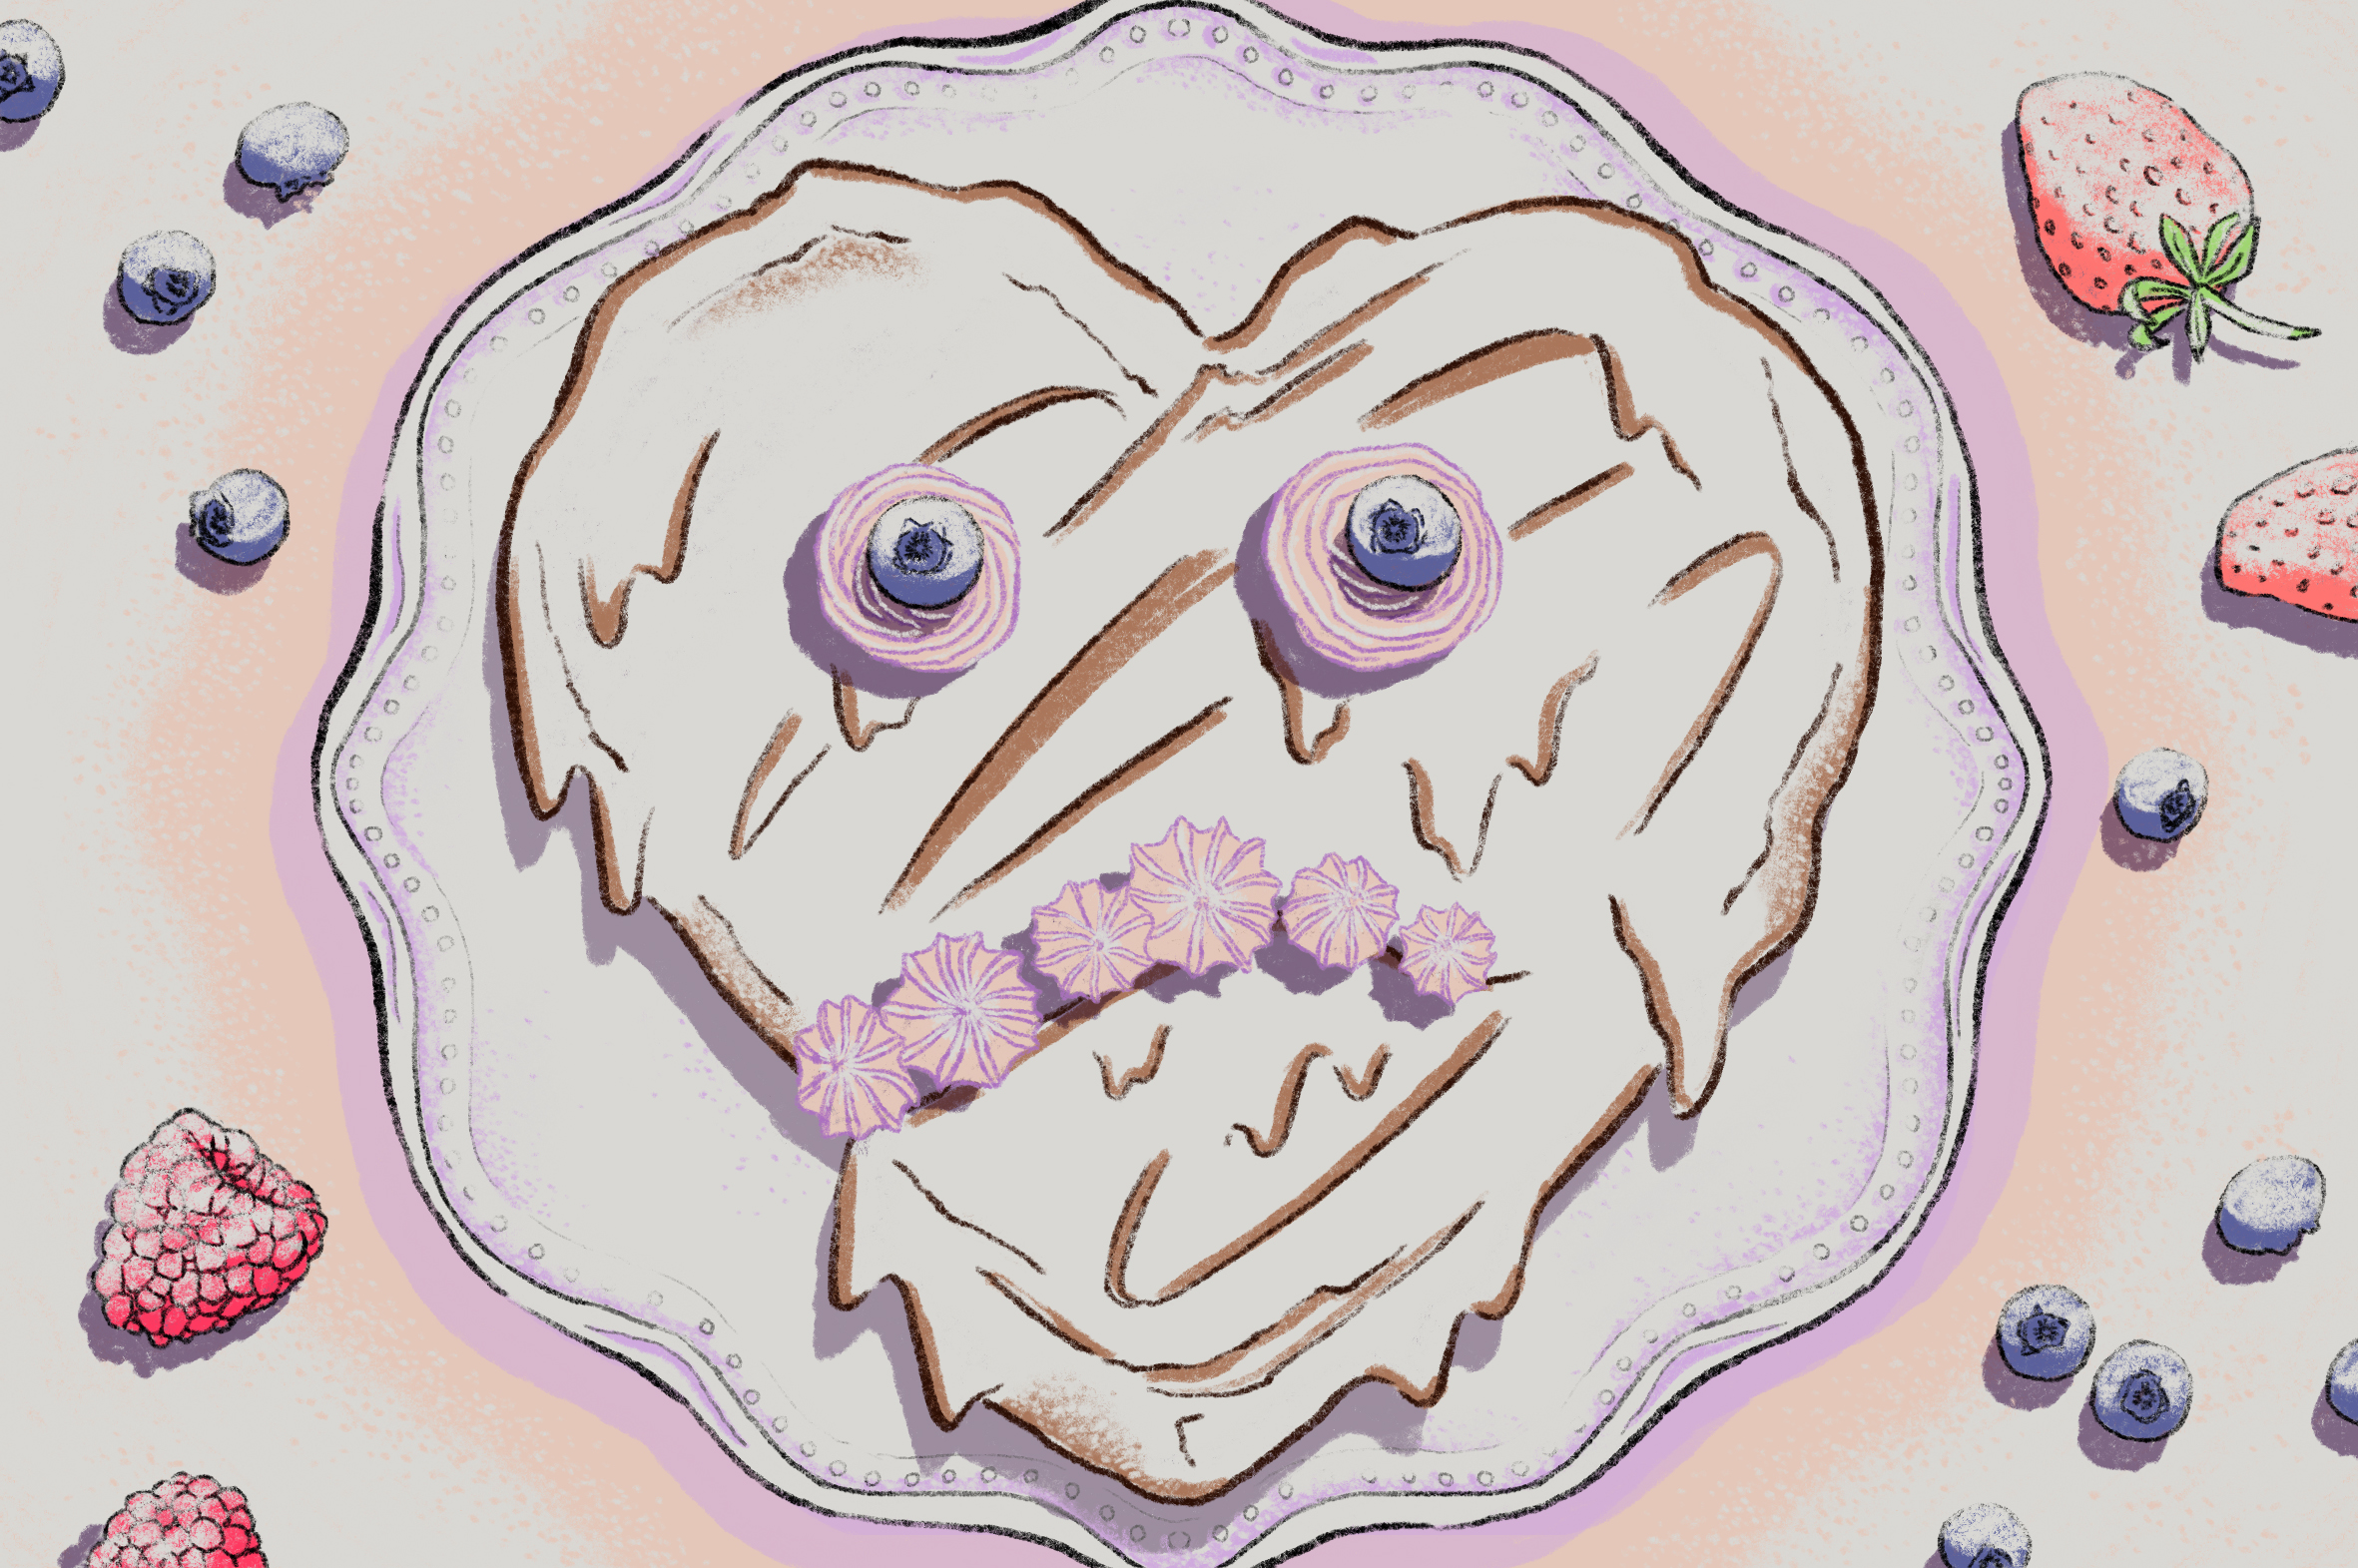 Illustration of heart-shaped chocolate cake with distressed face